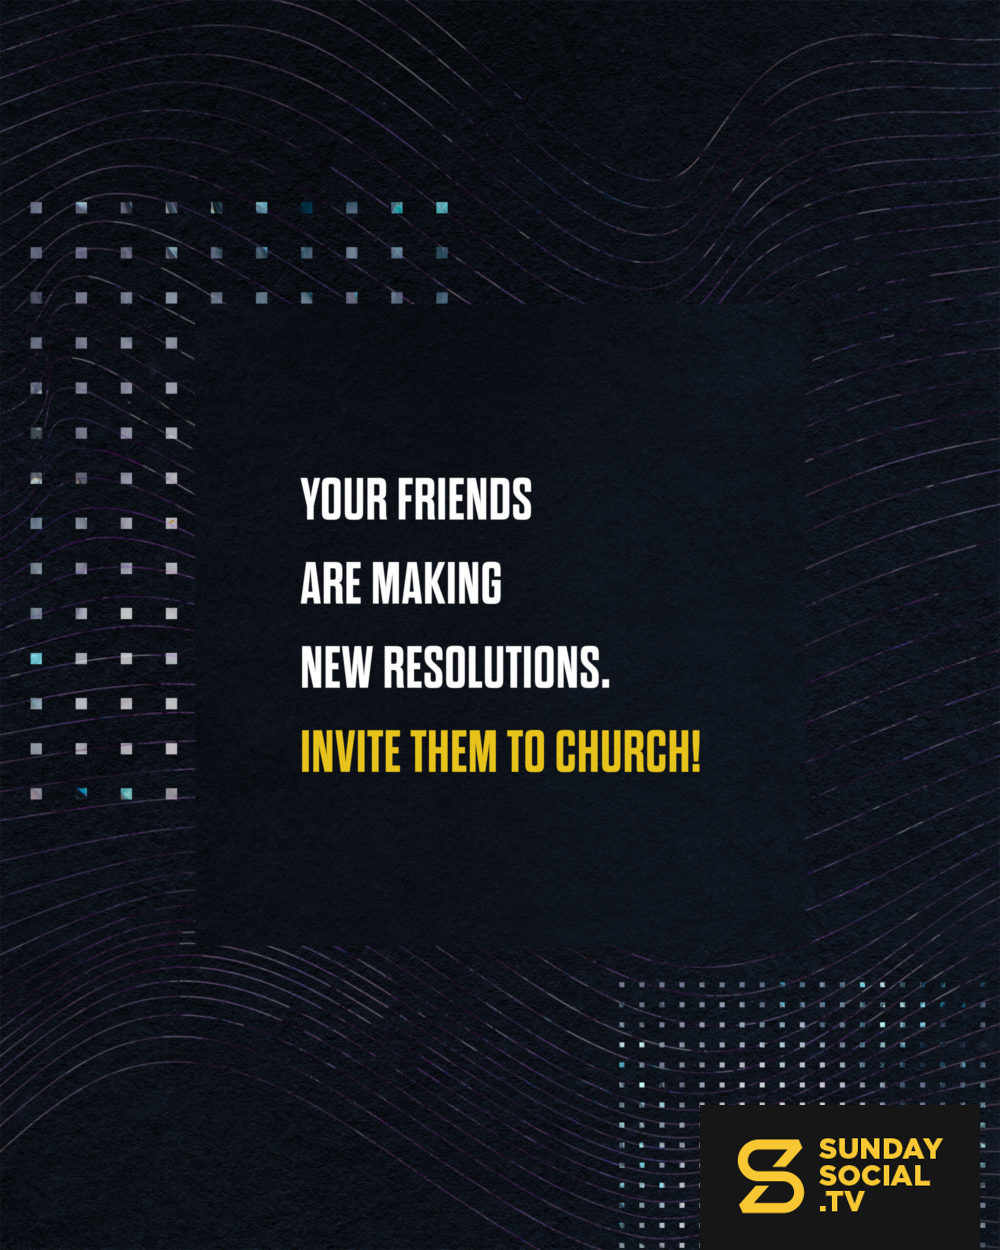 Your Friends Are Making New Resolutions Invite Them To Church Sunday Social Social Media Church Church Media Graphics Church Media Design